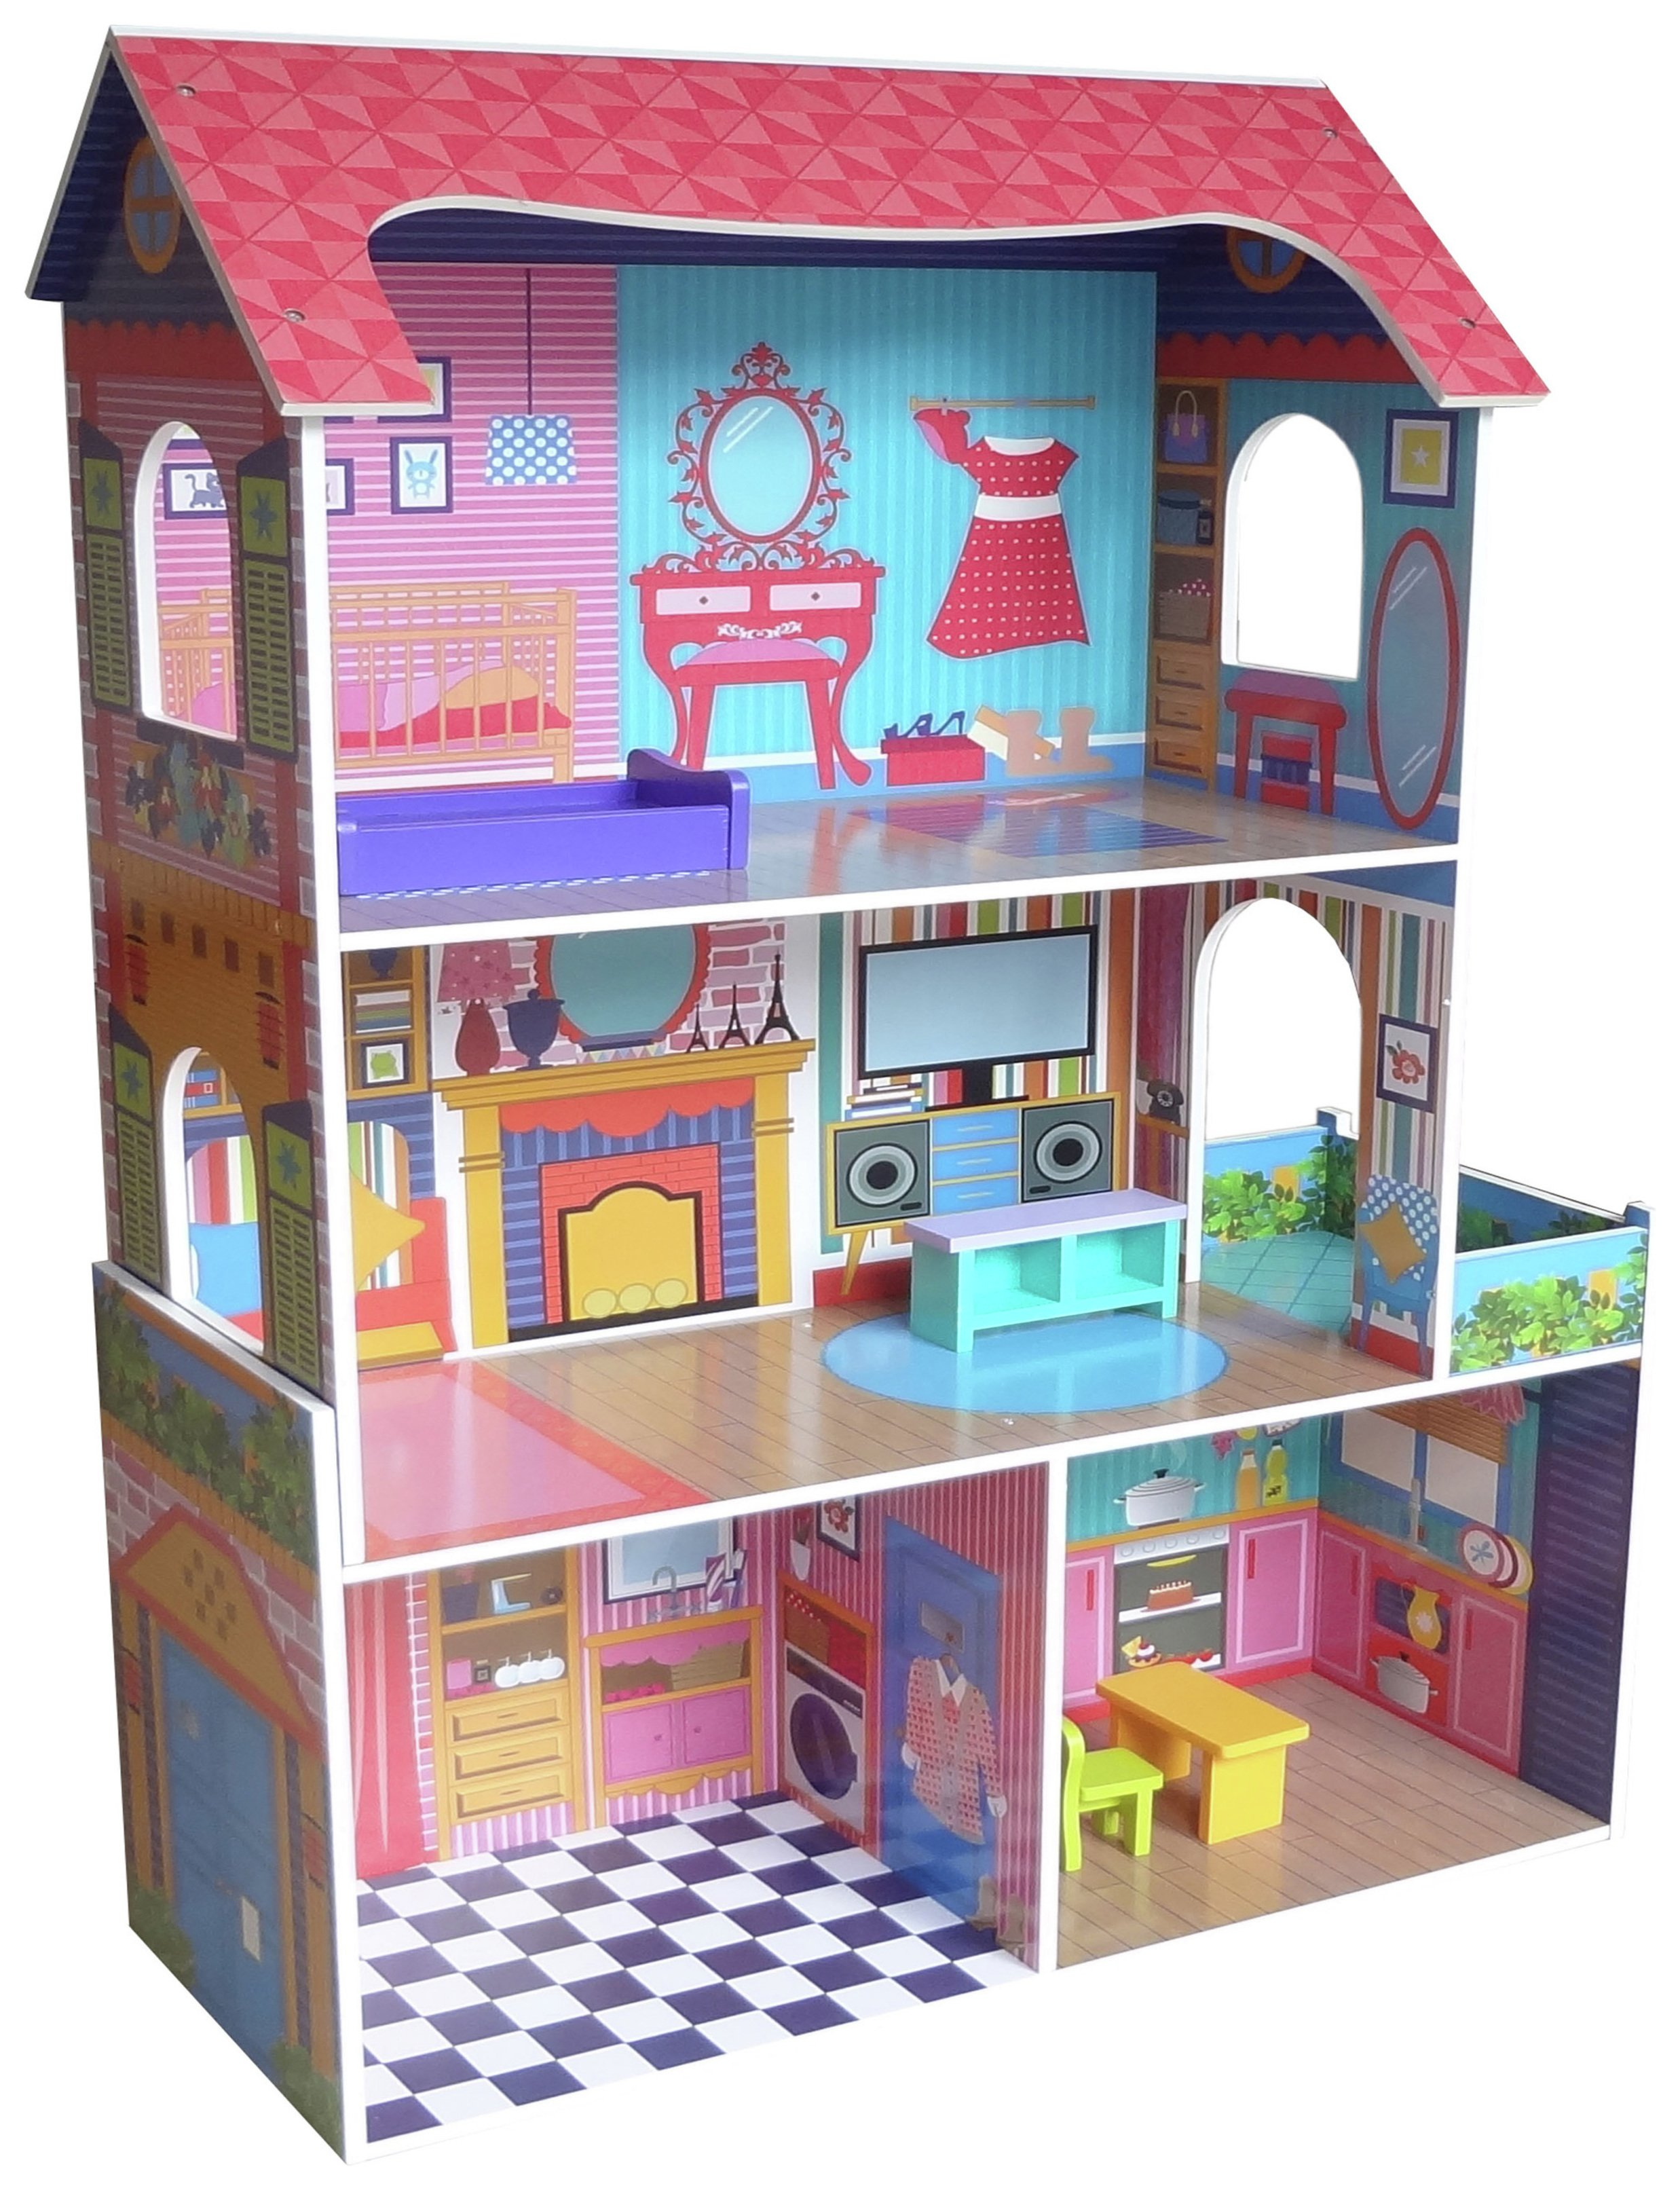 Kiddi Style Supreme Tall Town Dolls House review